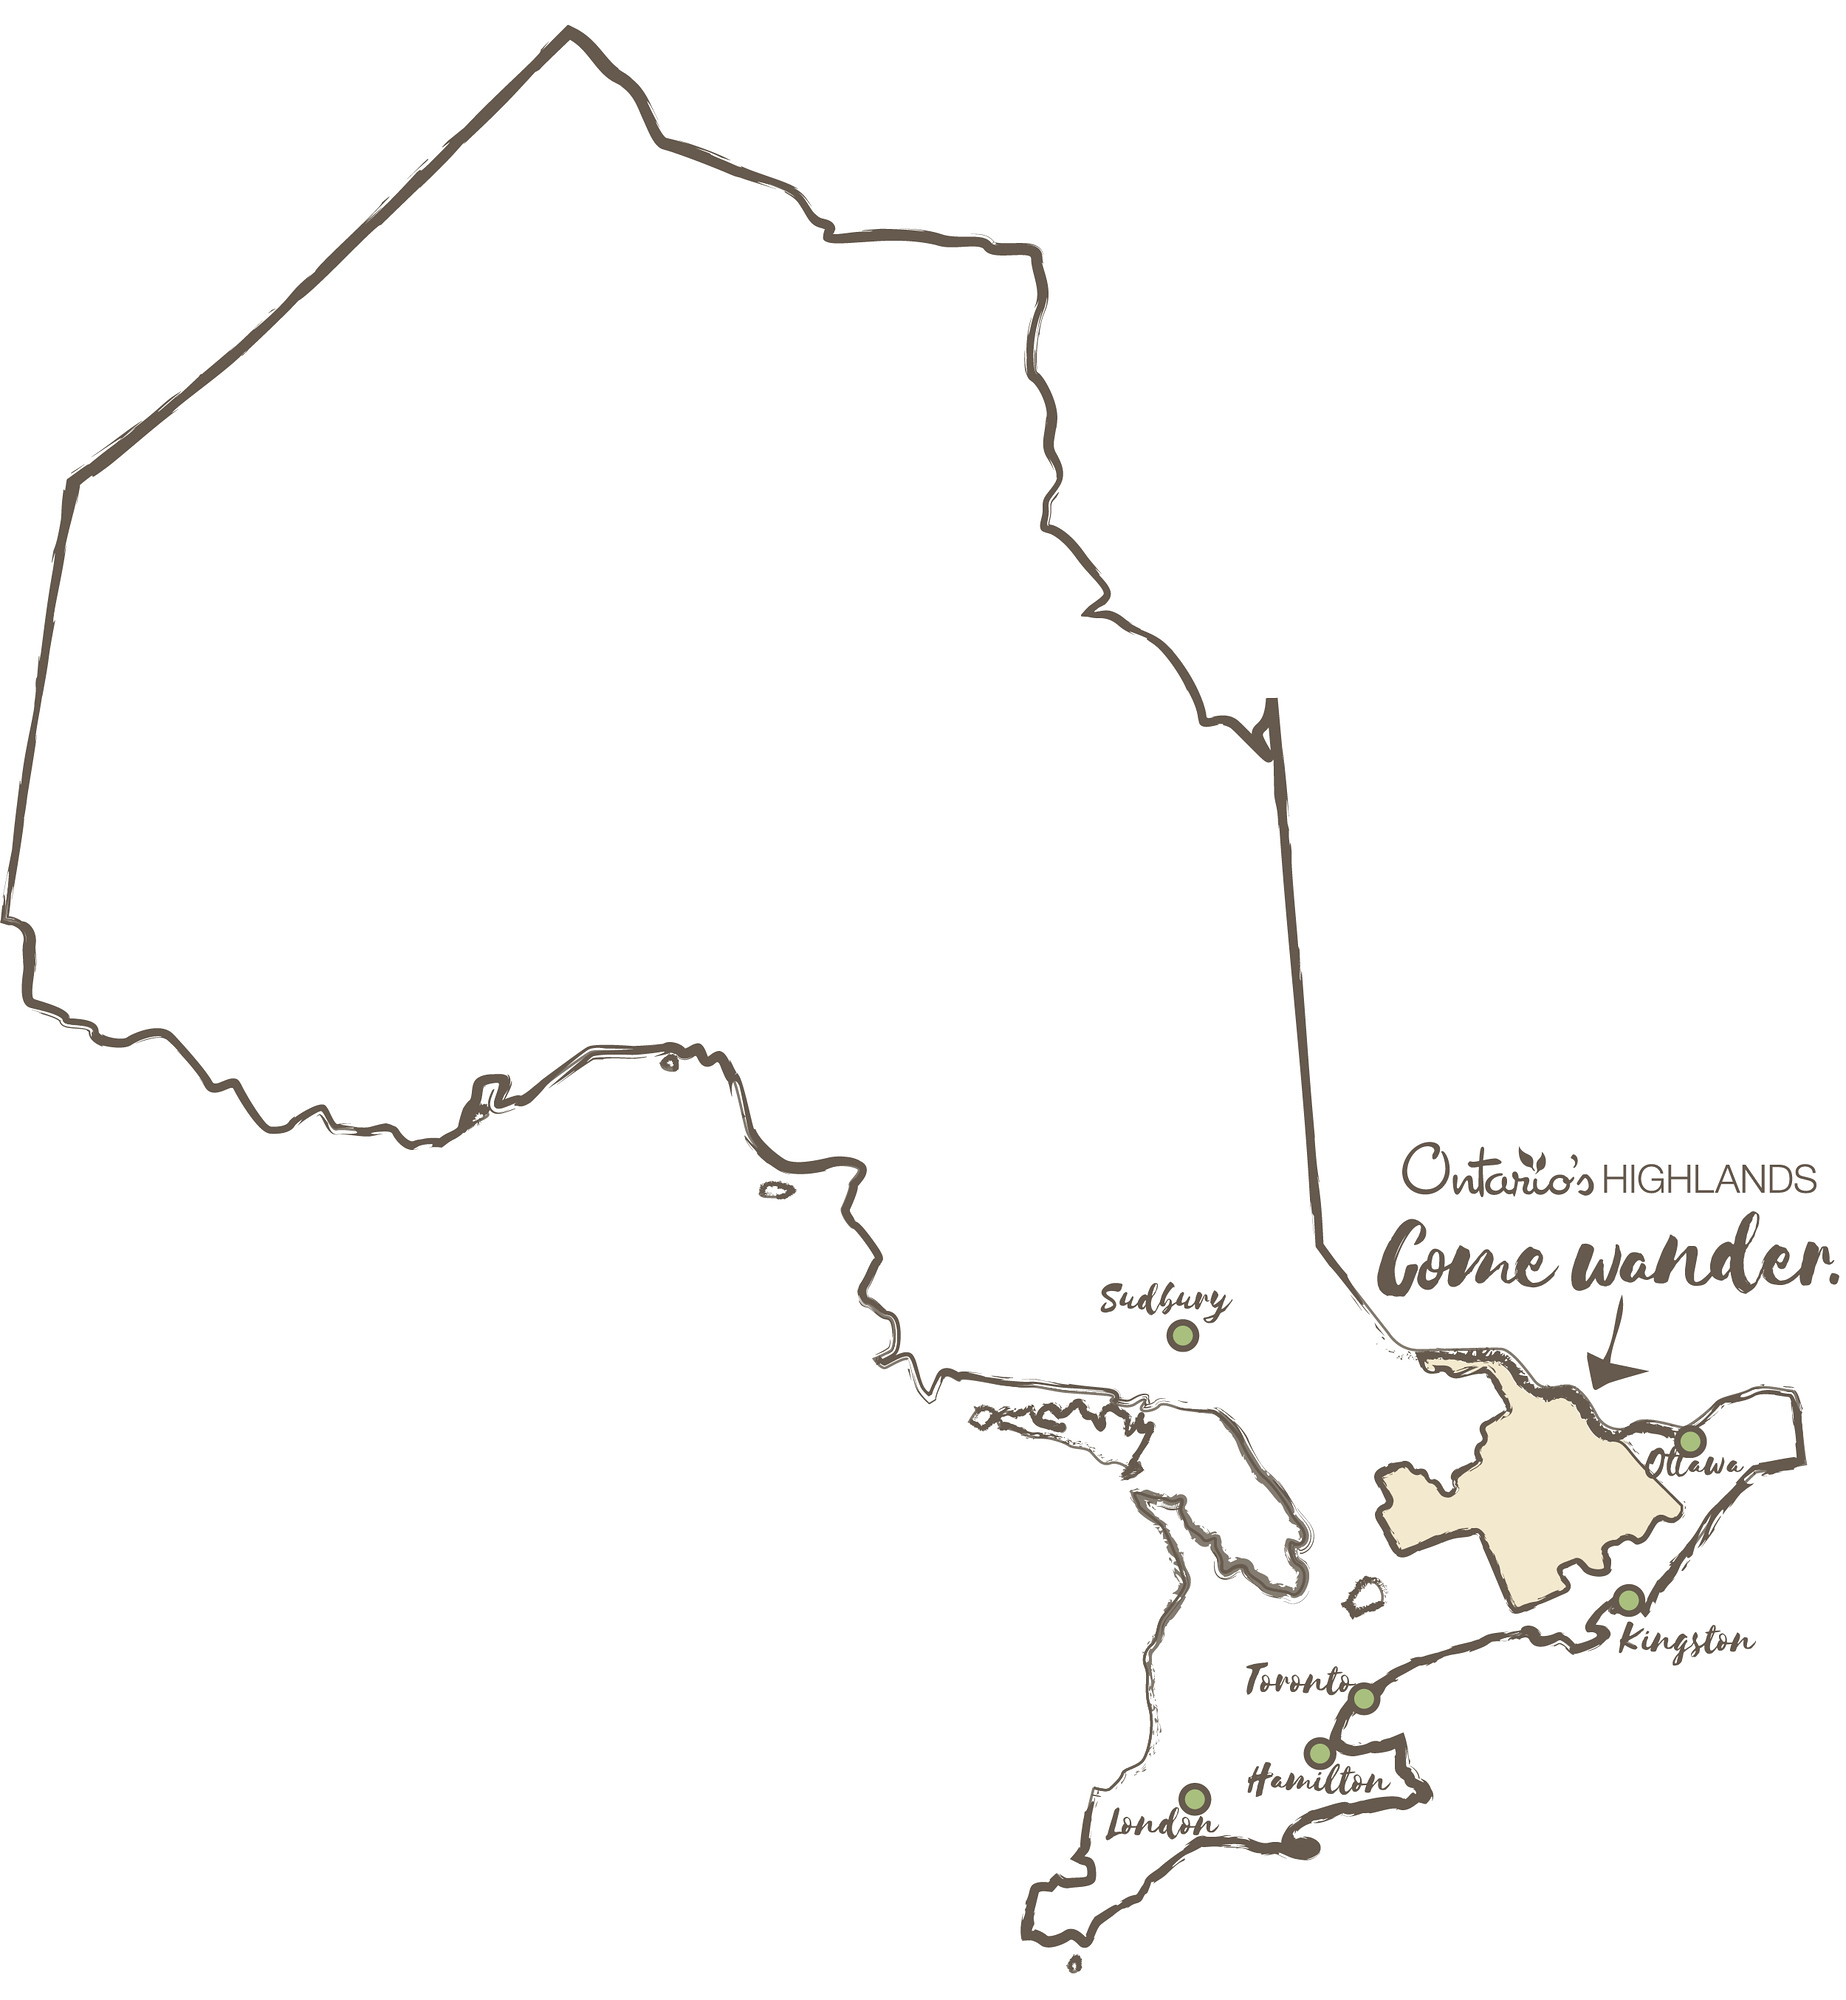 Ottawa Valley is located in Ontario's Highlands on the West of Ontario near Ottawa.